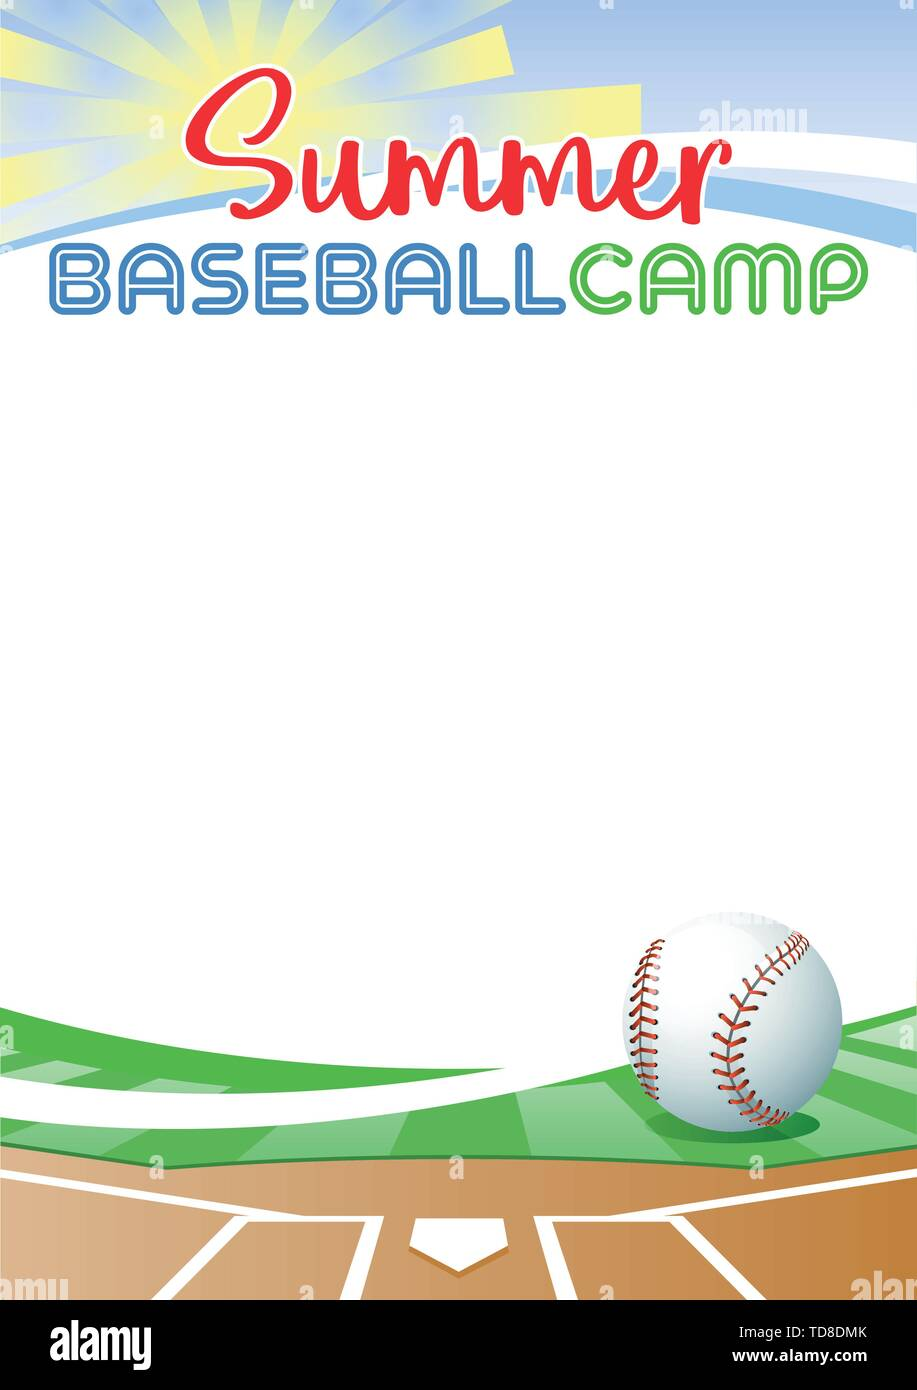 Summer Baseball Camp. Template poster with realistic baseball ball. Place for your text message. Vector illustration. Stock Vector